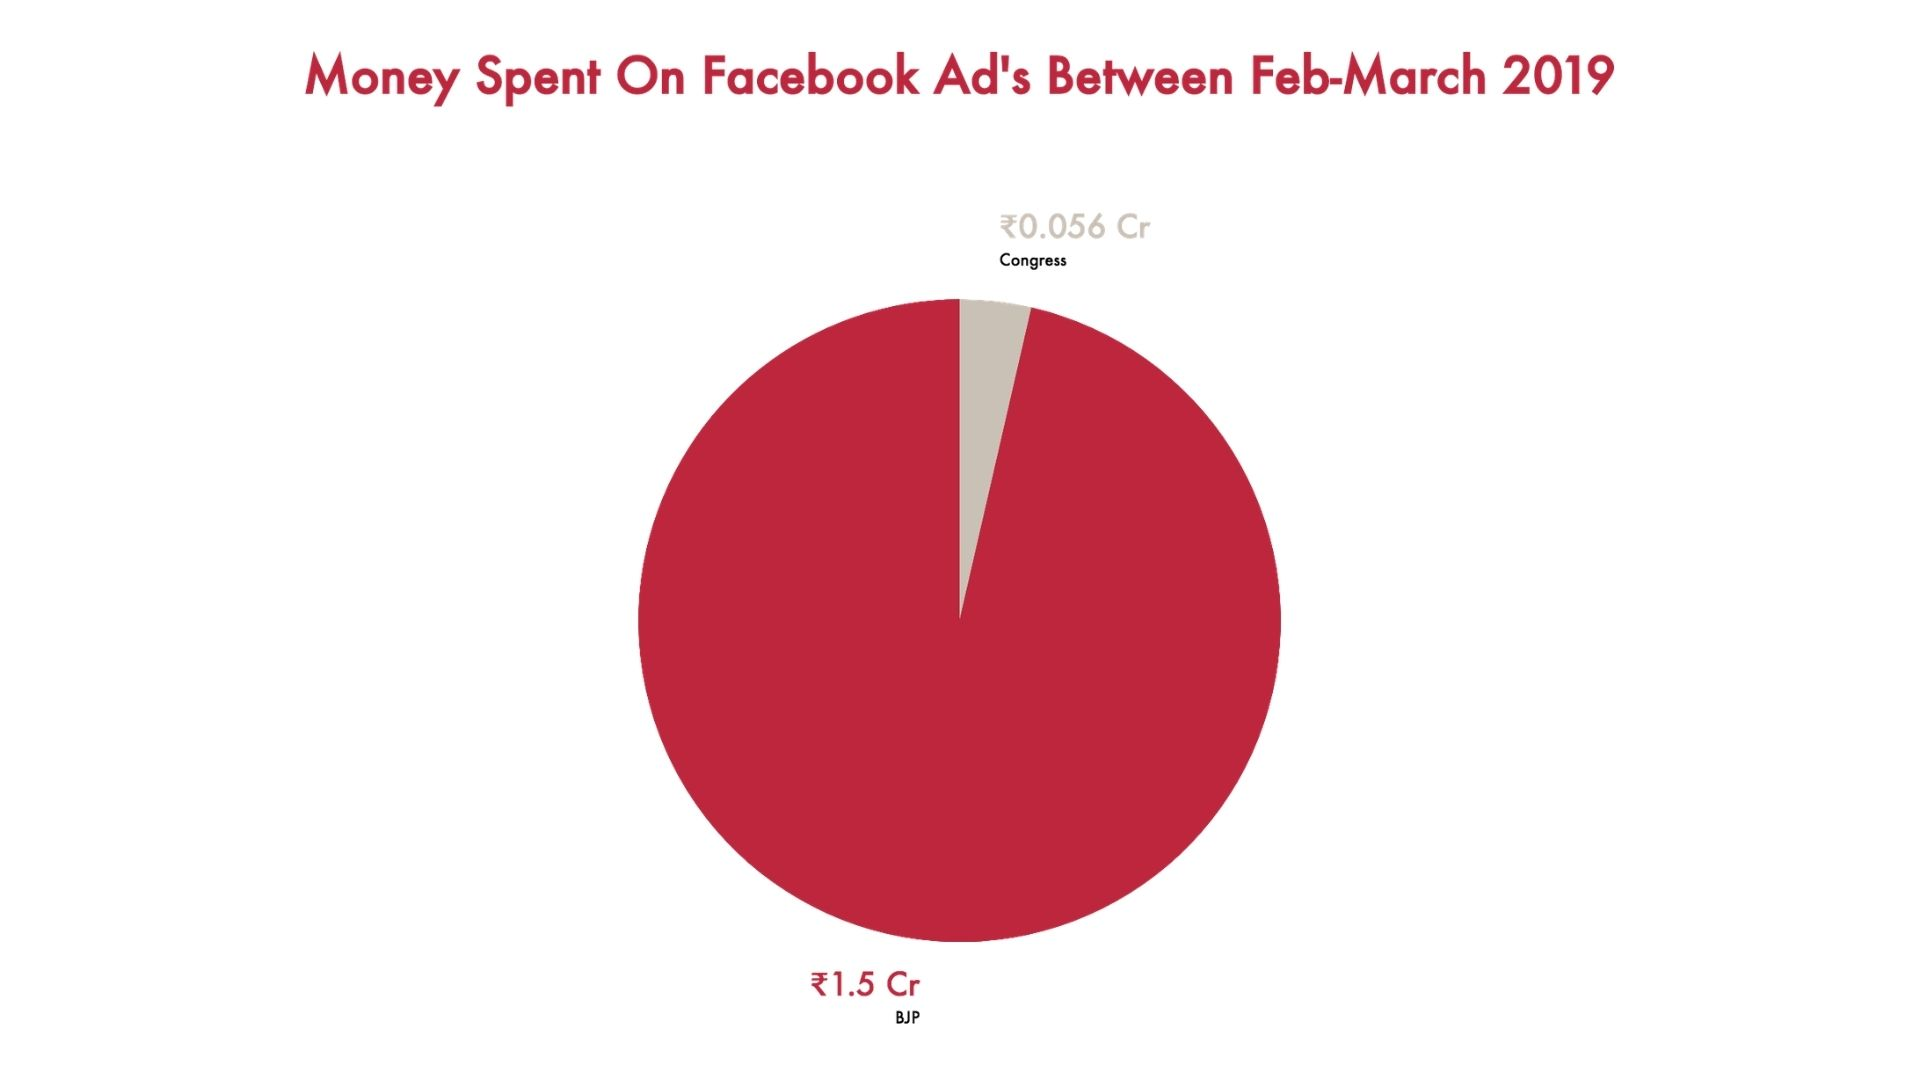 Money spent by bjp-congress on fb ads feb-march 2019